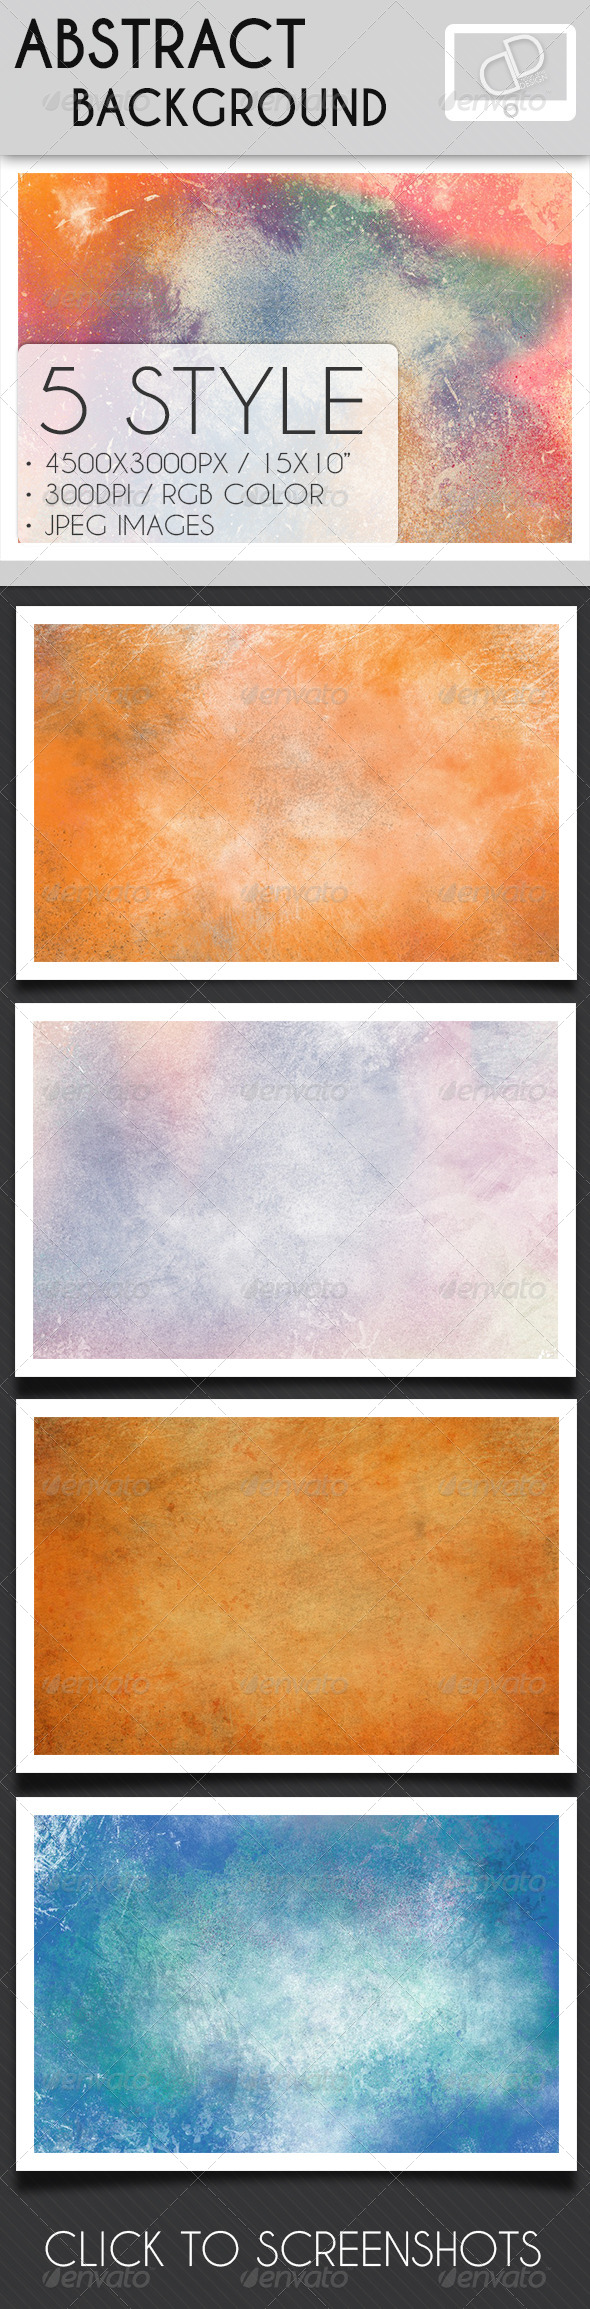 GraphicRiver Abstract Background 6885325